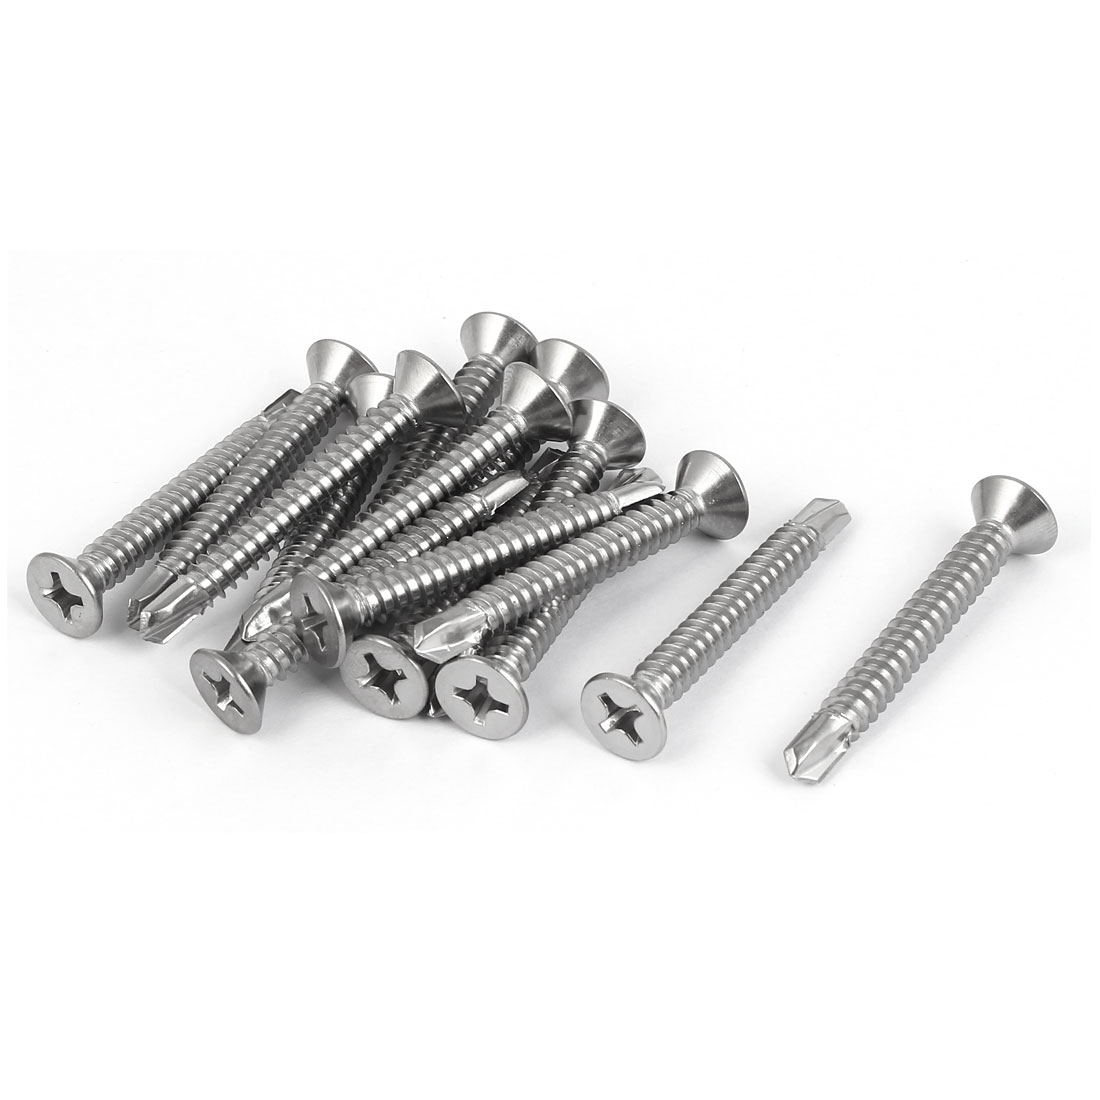 M6.3 x 50mm #14 Stainless Steel Self Drilling Flat Phillips Head Screws 15 Pcs